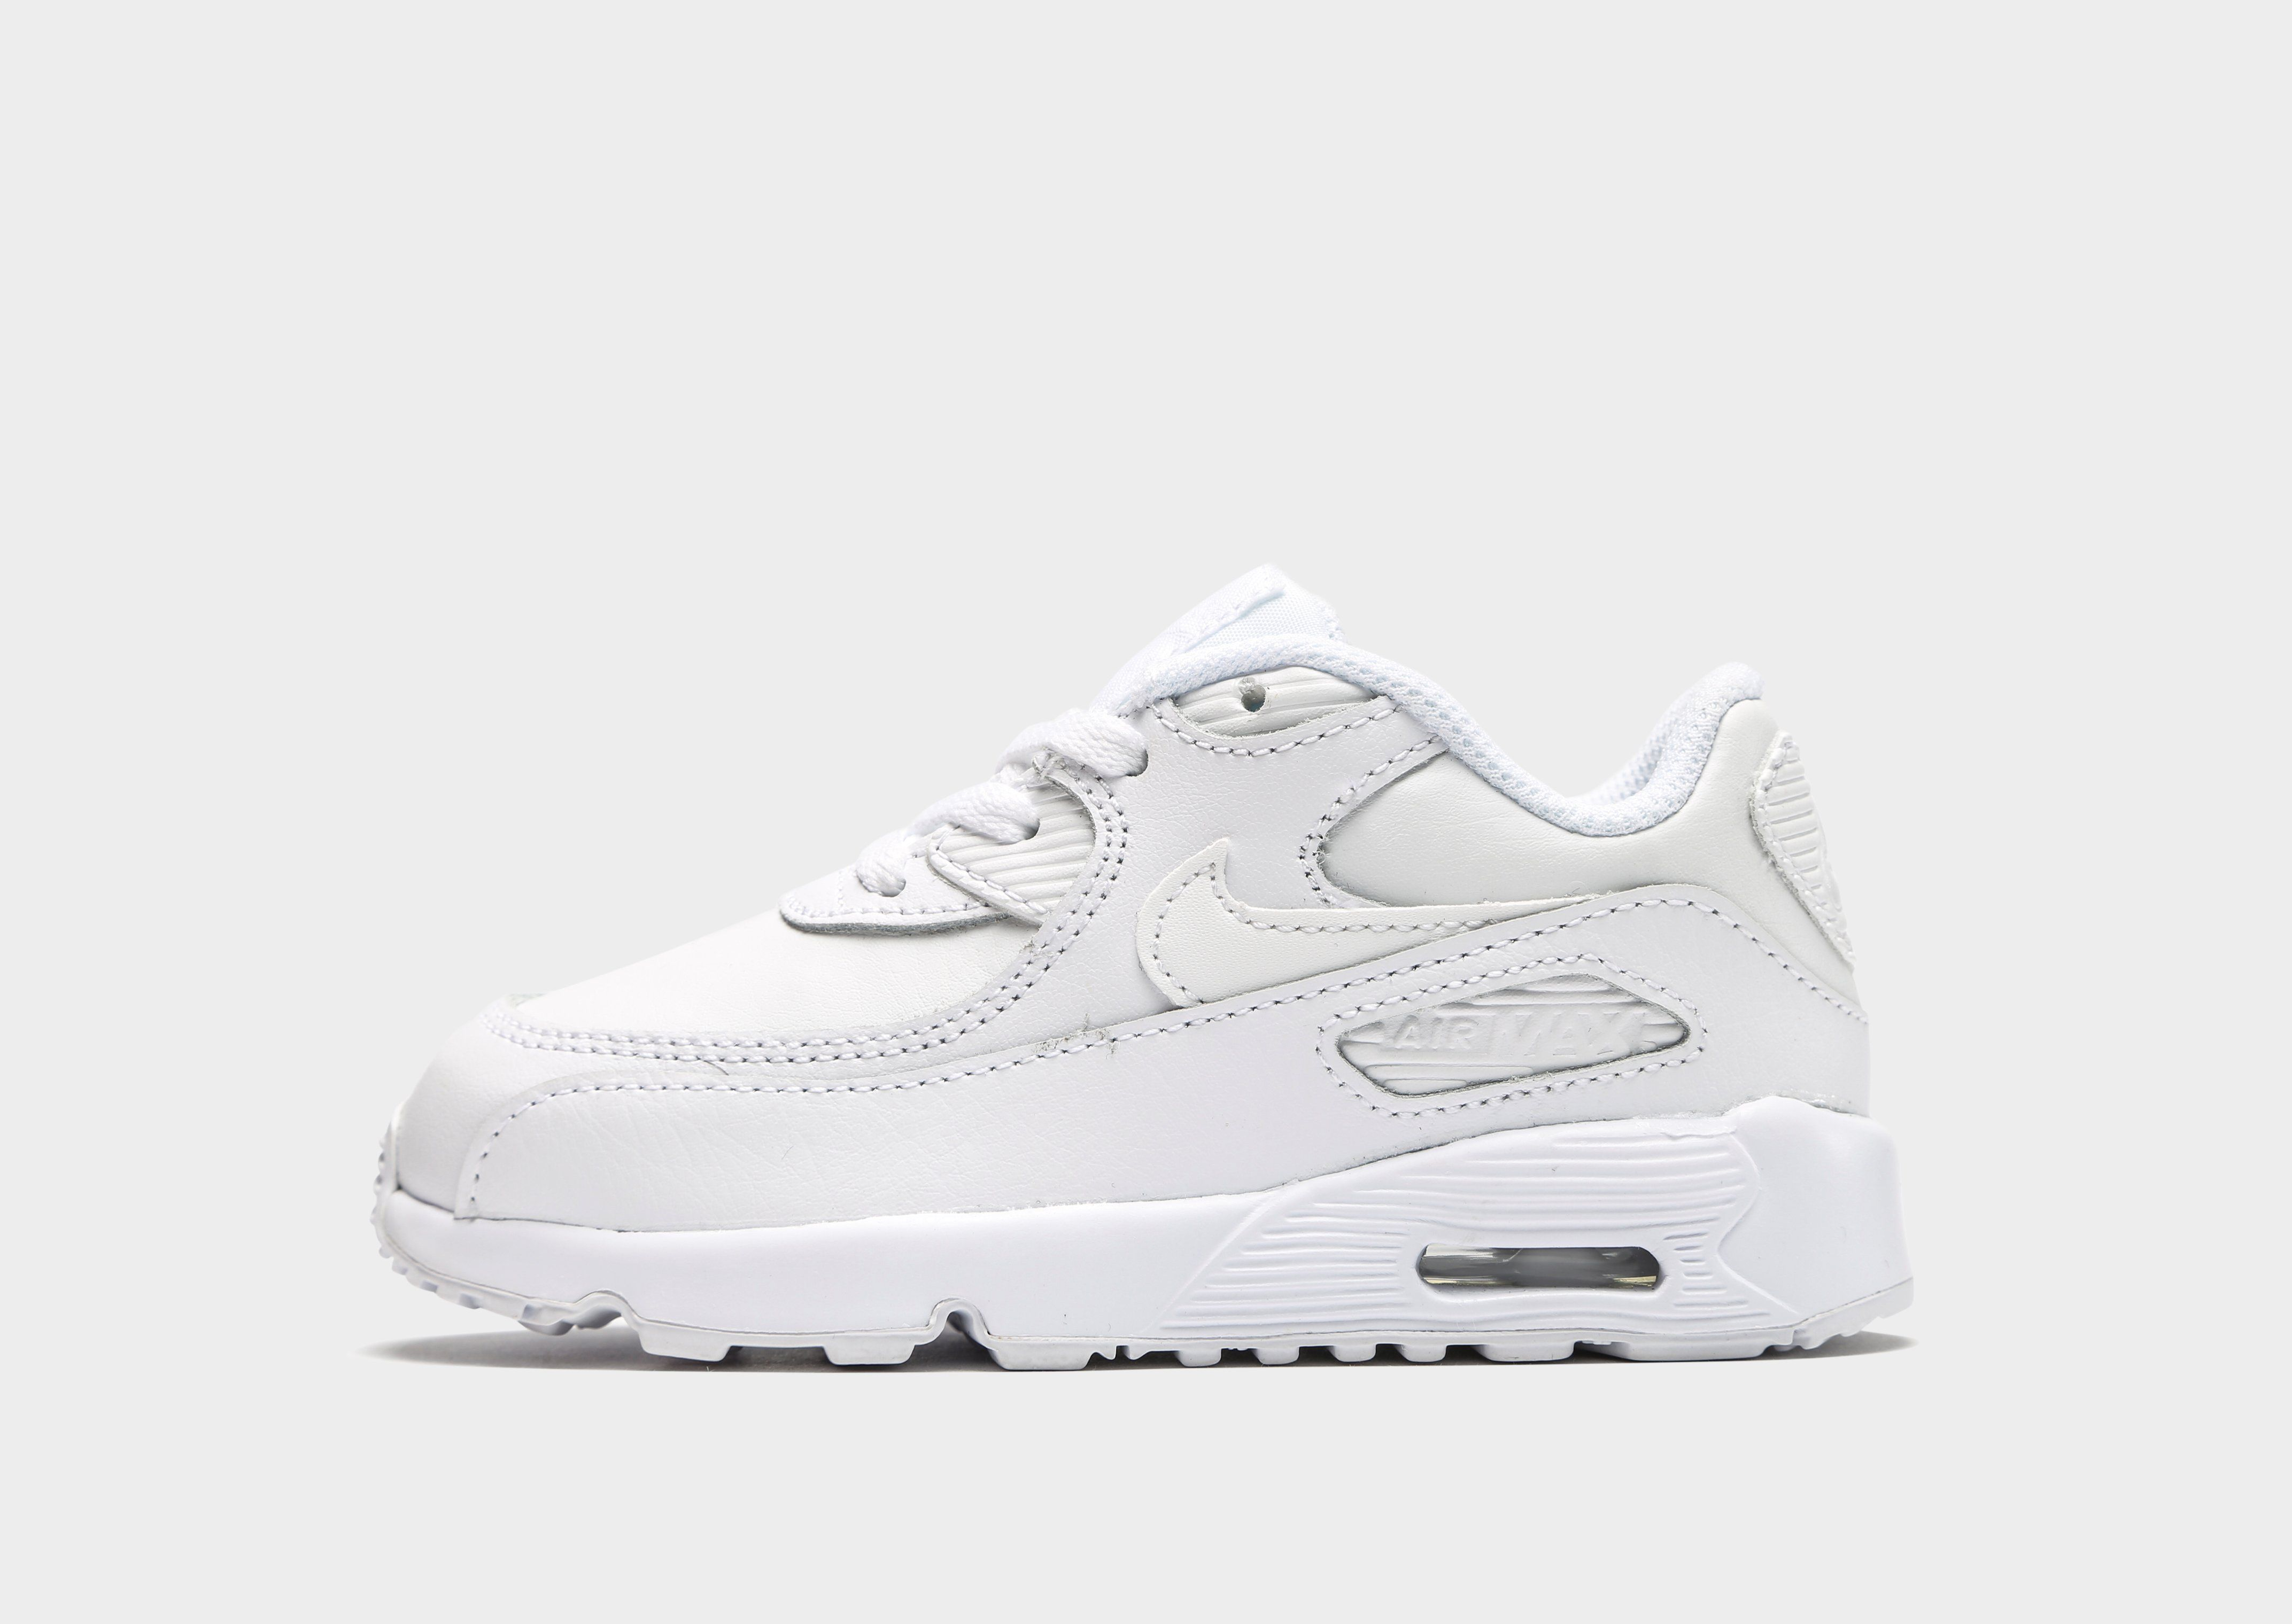 quality design 9632e d2d0a Nike Air Max 90 Leather Baby & Toddler Shoe | JD Sports